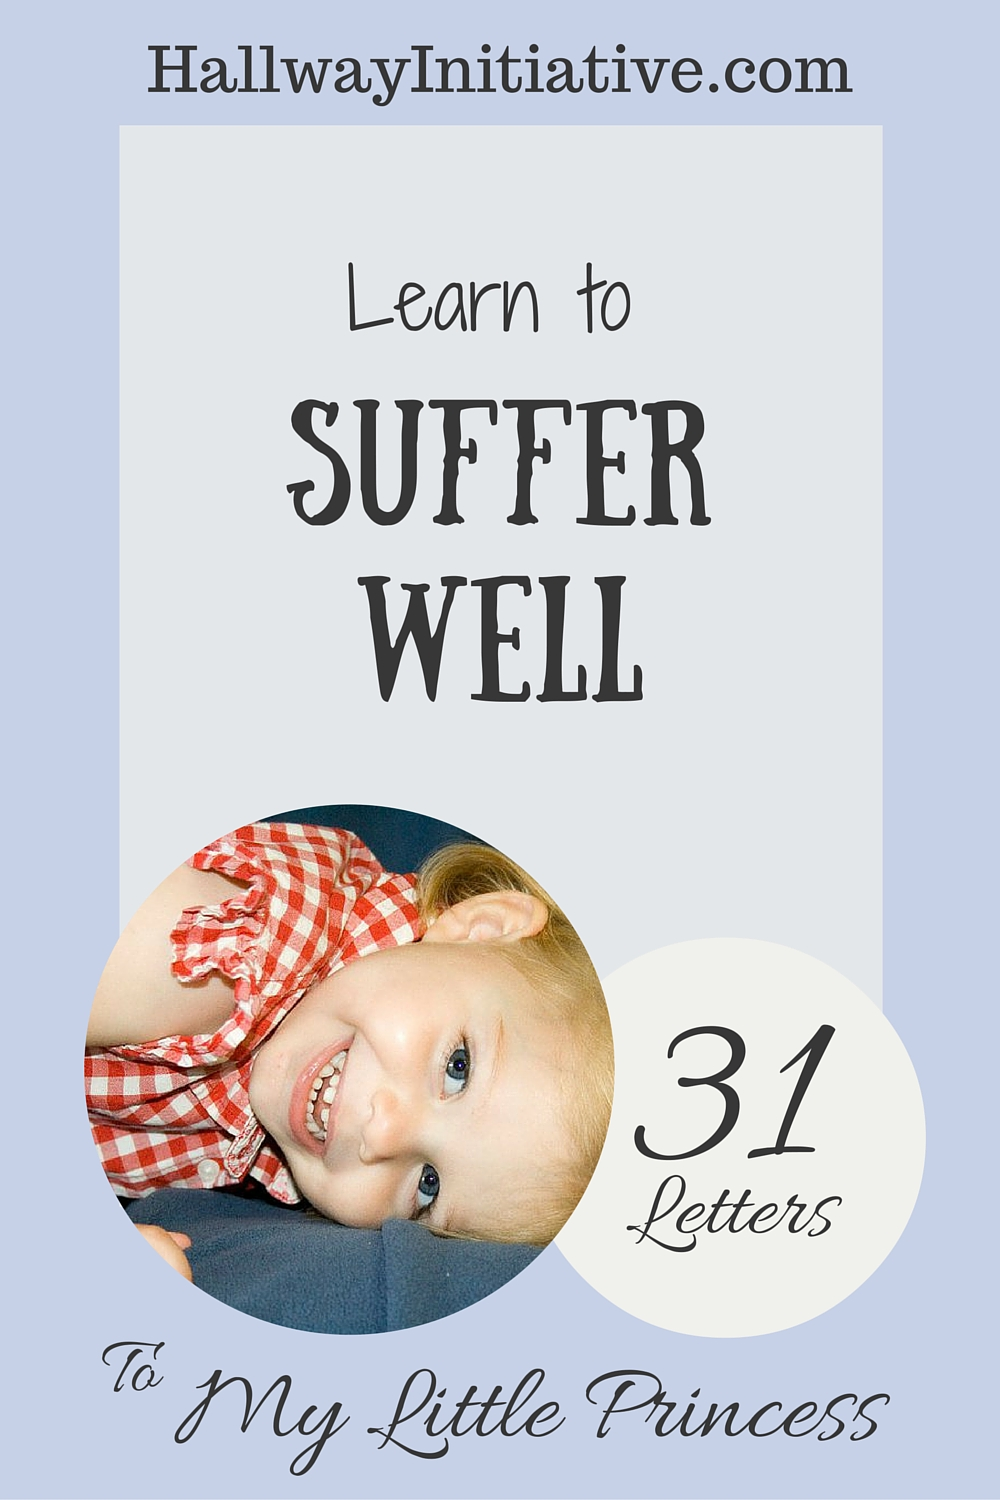 Learn to suffer well